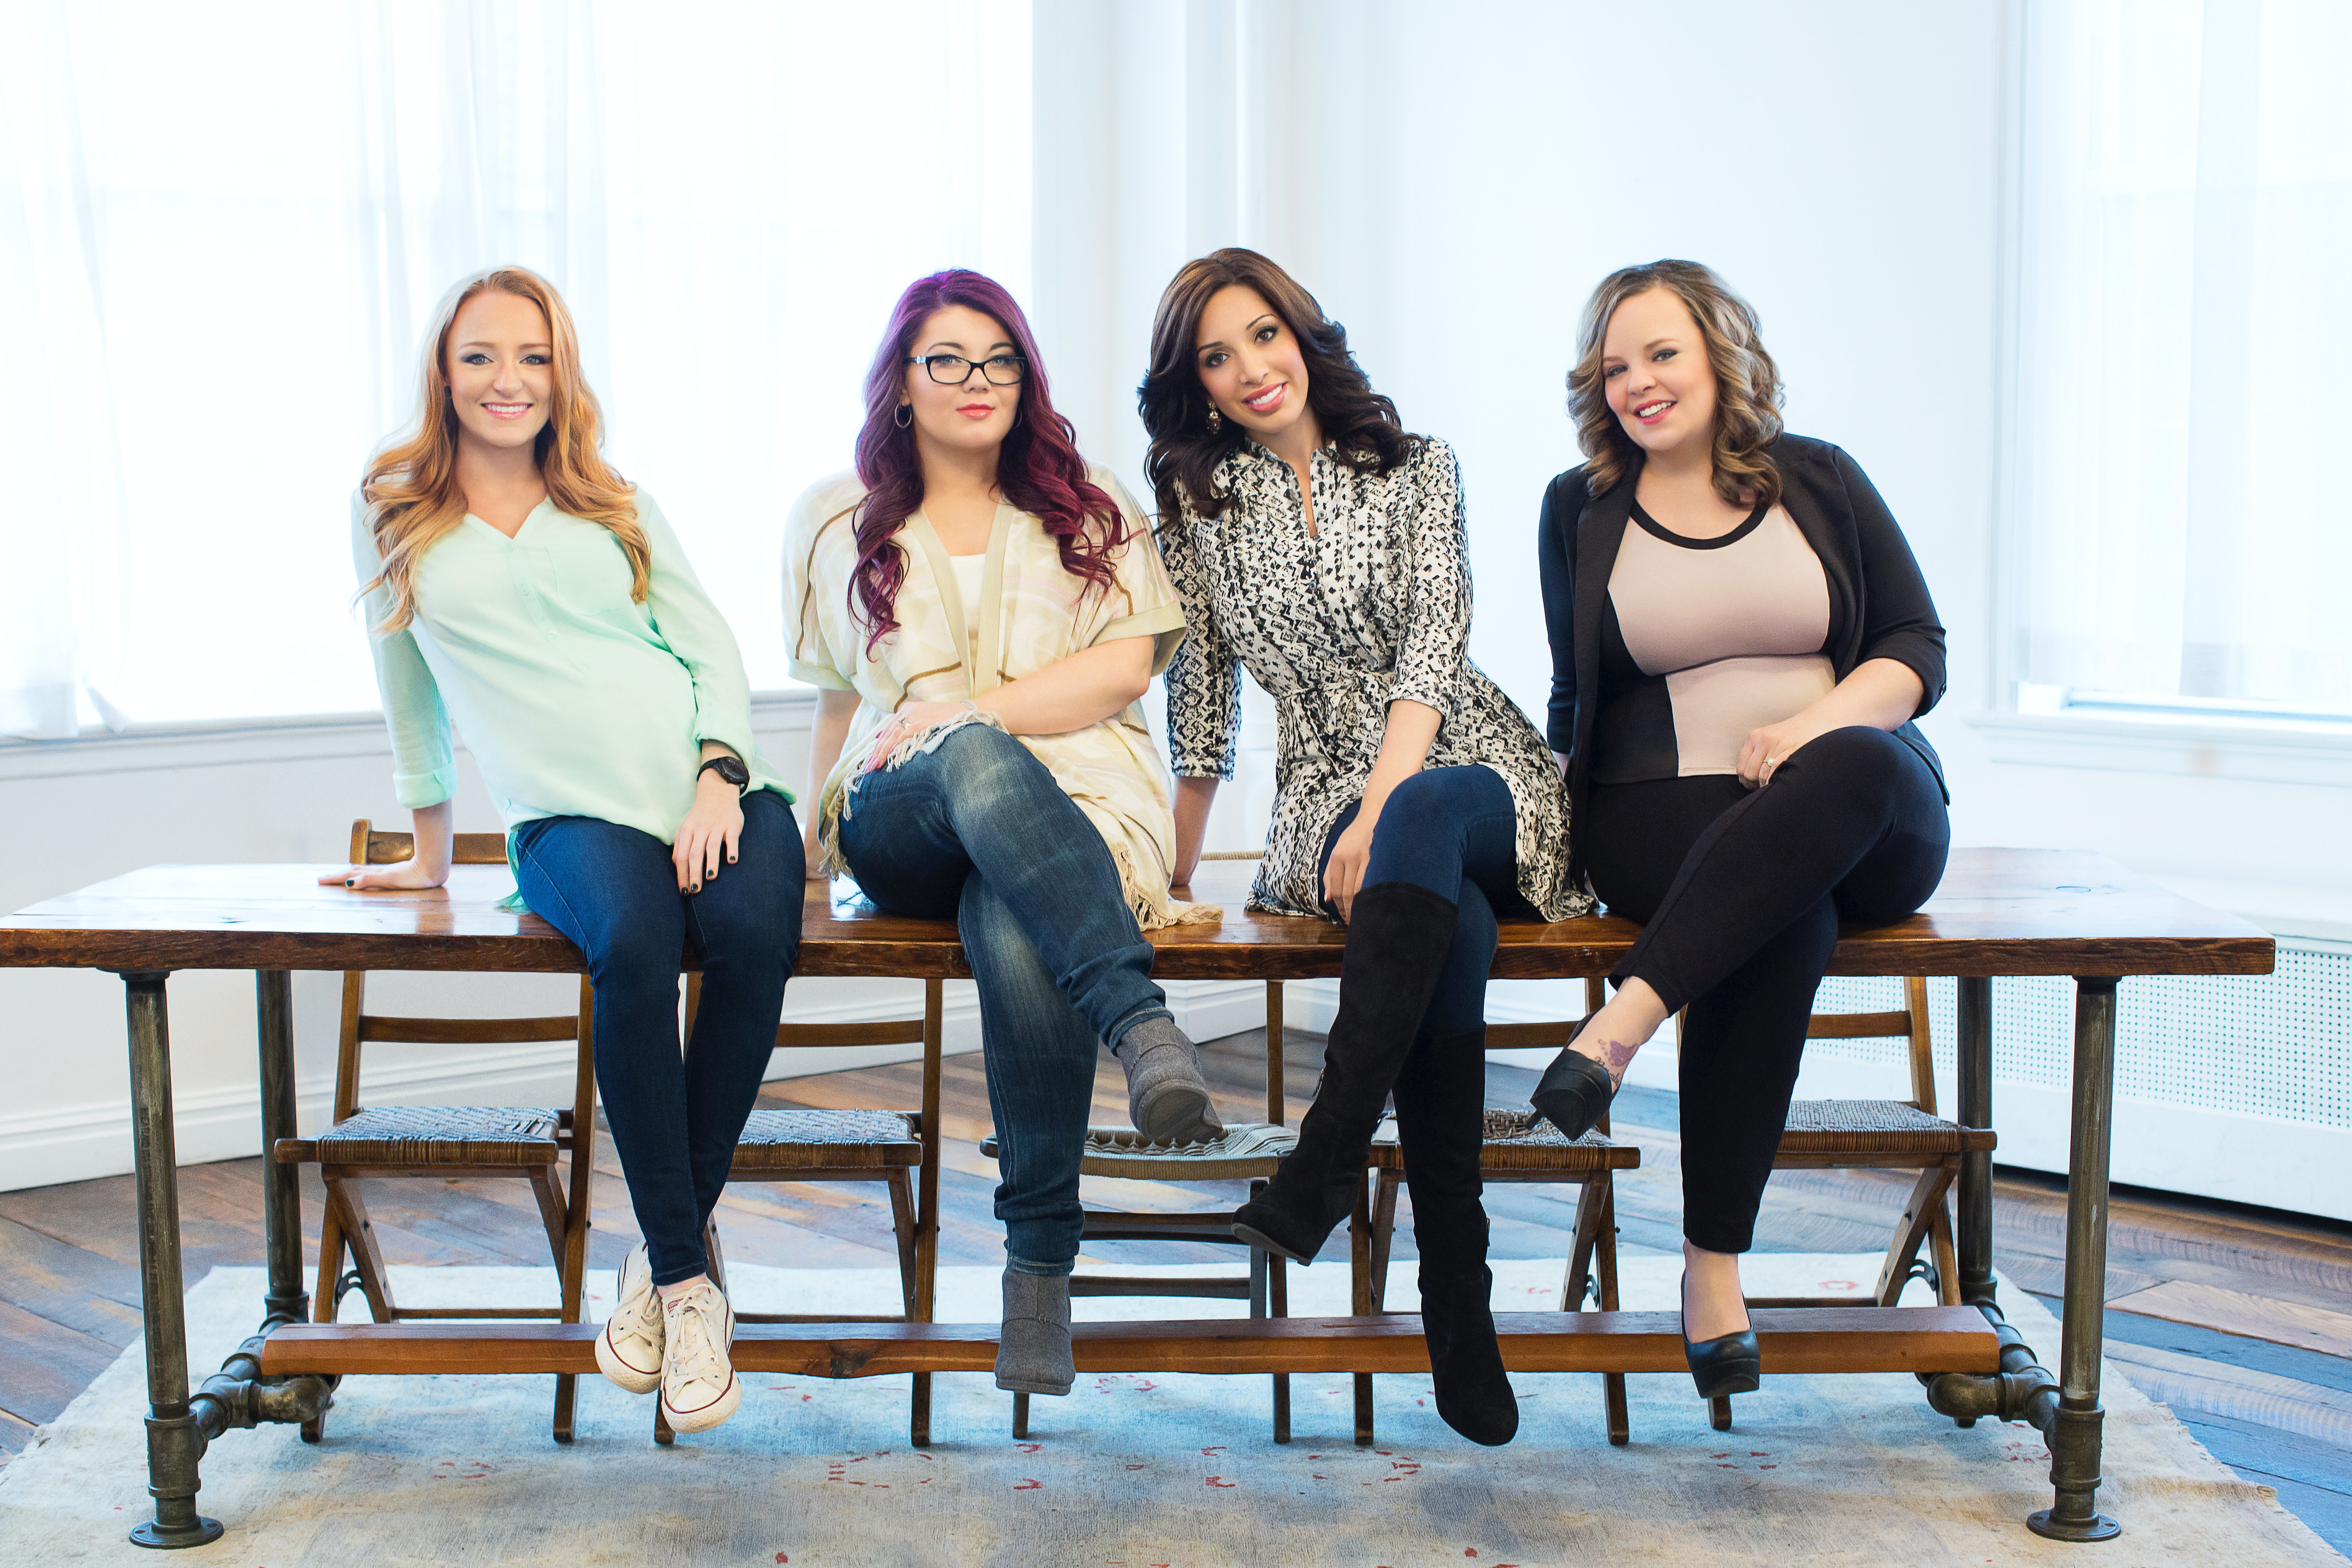 Will 'Teen Mom OG' Return For Another Season? The Original Cast Definitely  Has Enough Material For More